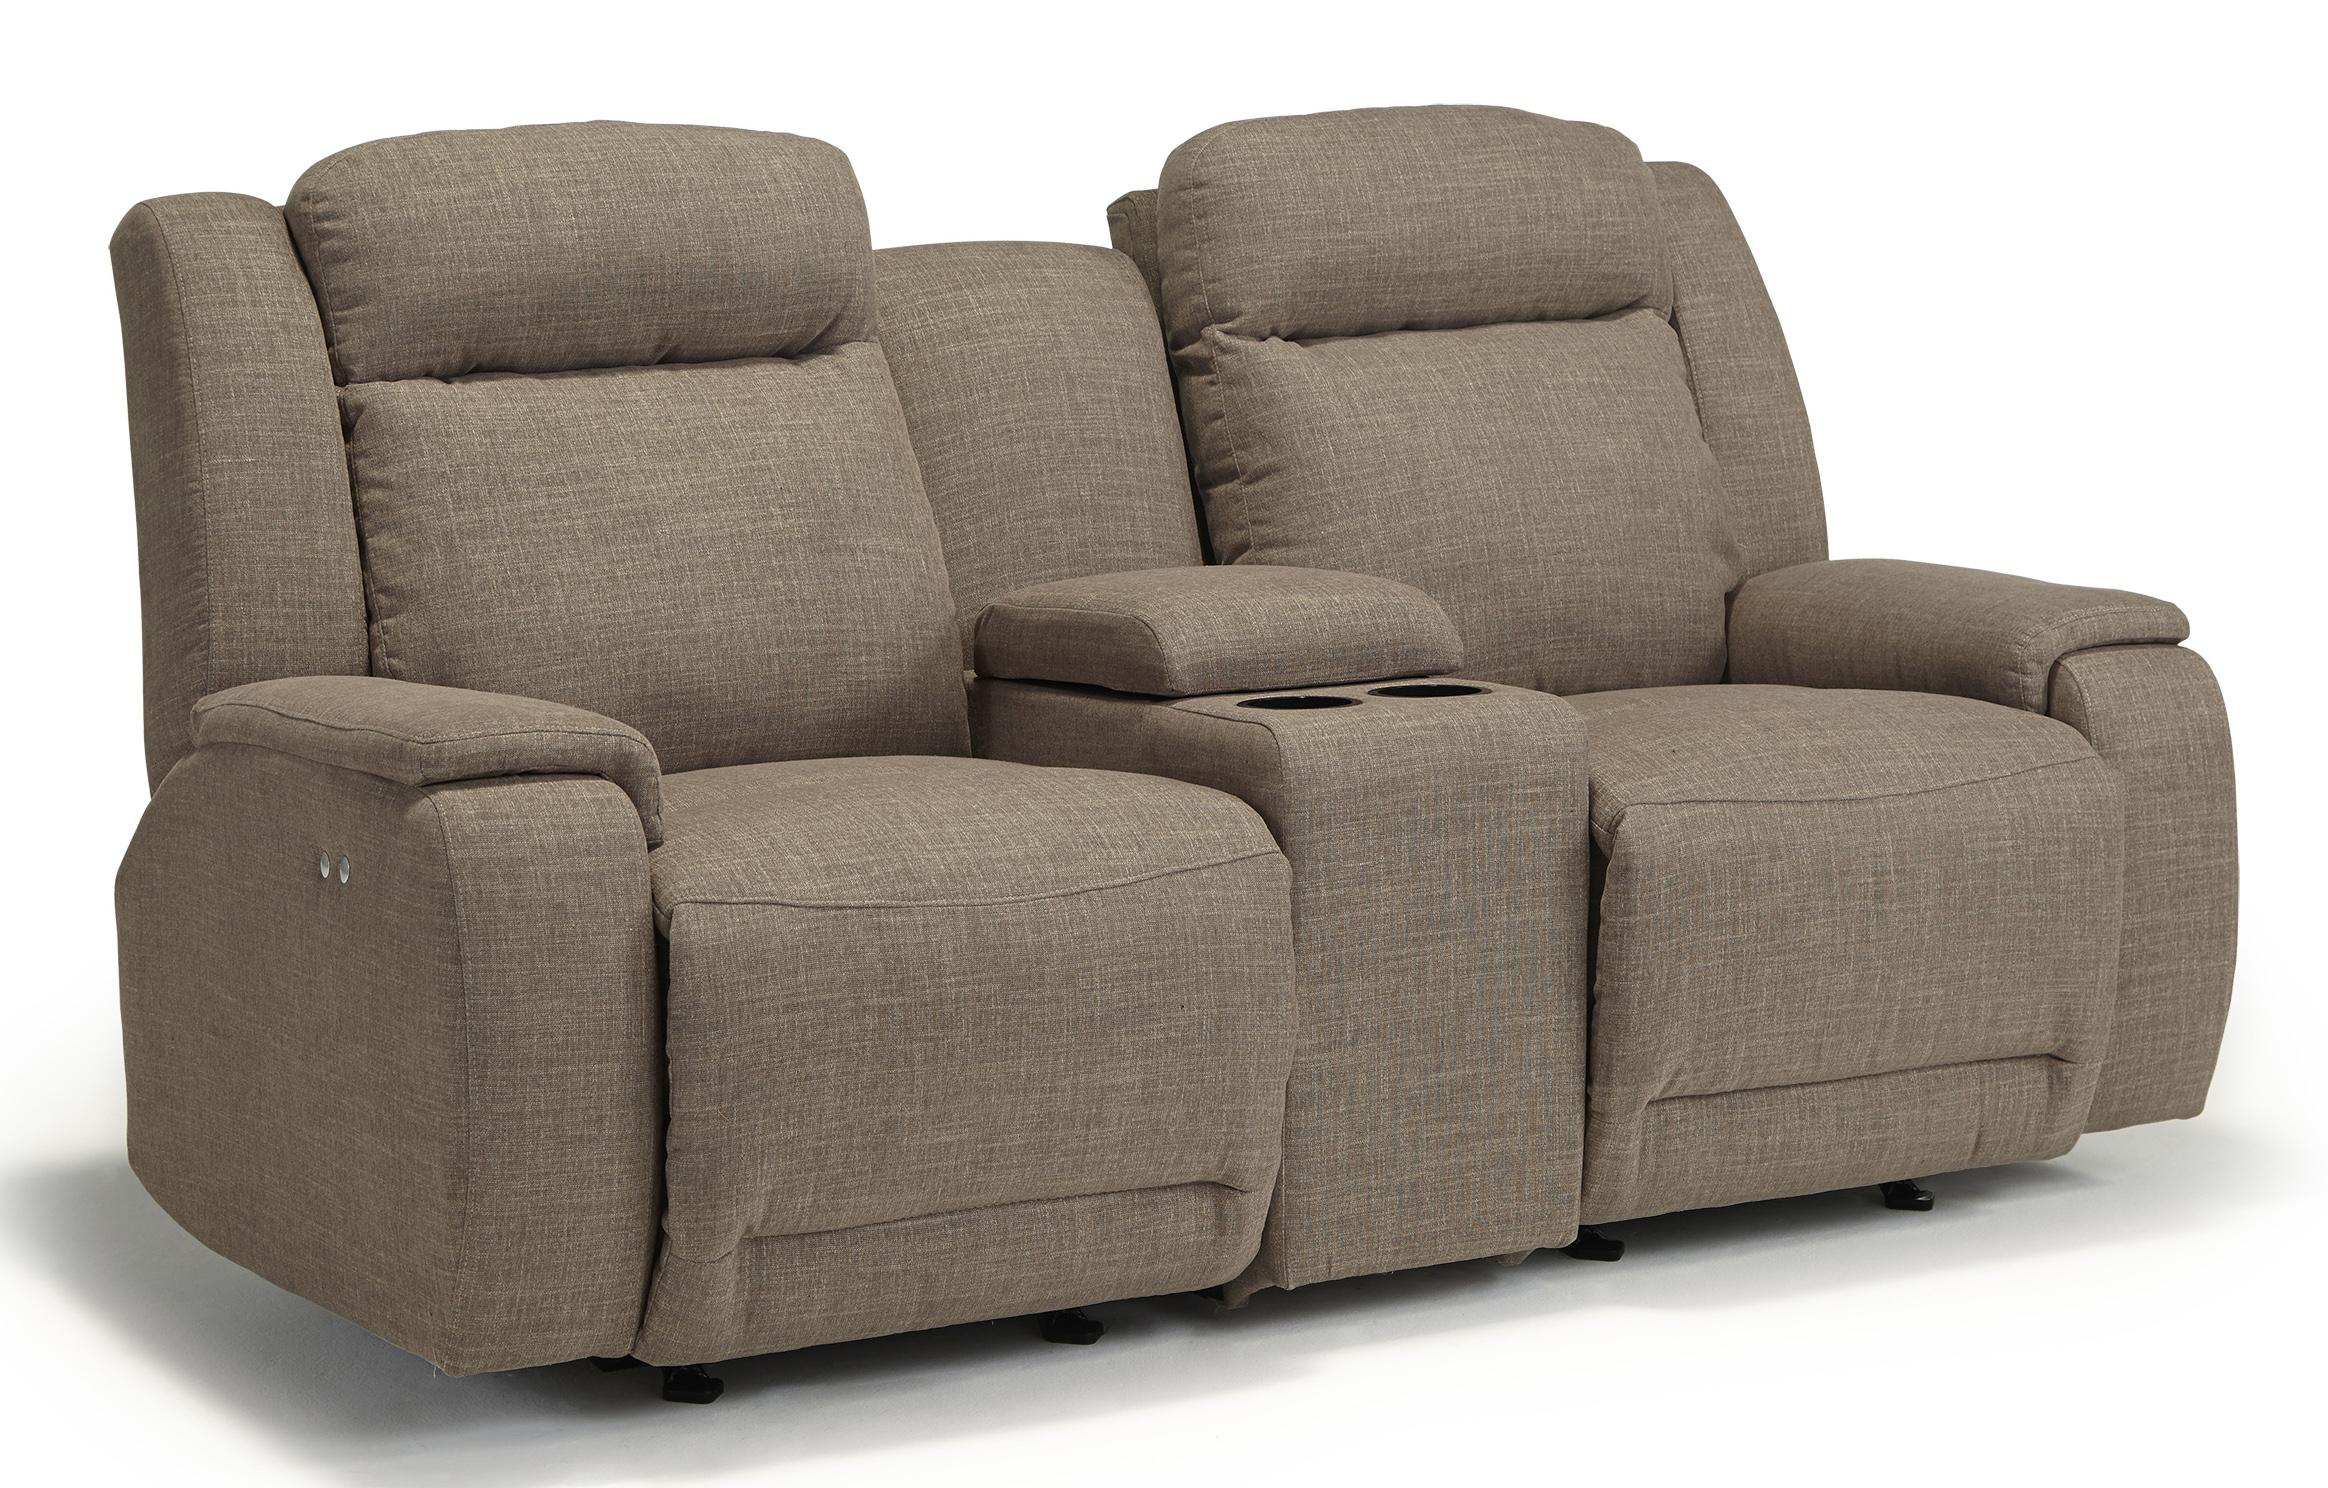 Best home furnishings hardisty l680rc7 rocking reclining loveseat with cupholder and storage Storage loveseat